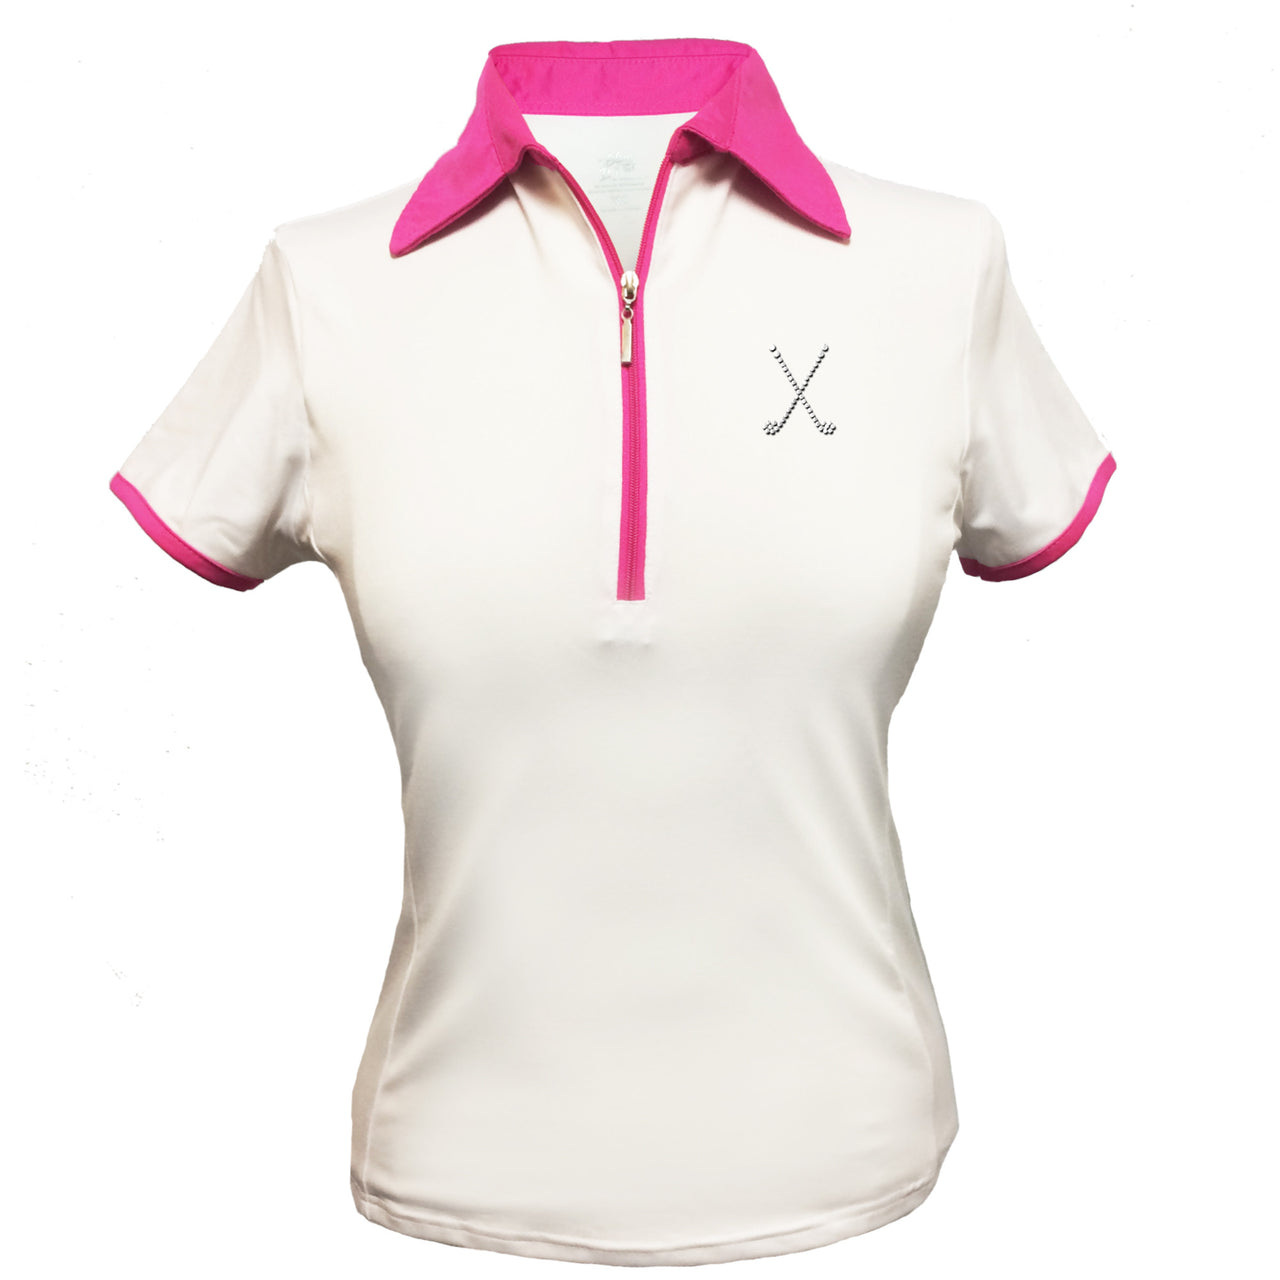 Lady's Polo - Crossed Clubs Design